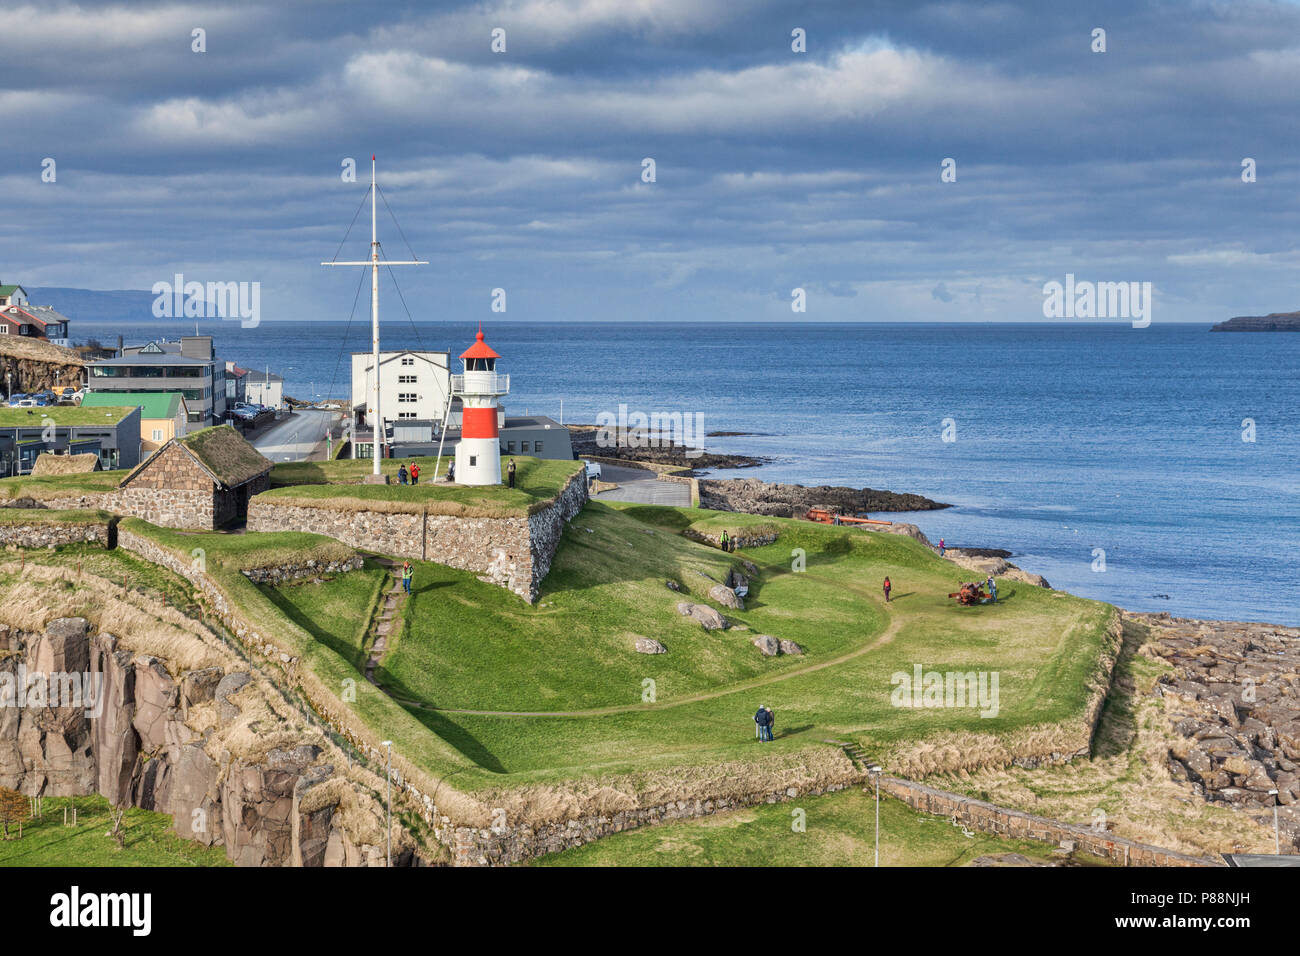 26 April 2018: Torshavn Faroe Islands - Historic Skansin Fortress and Lighthouse. - Stock Image